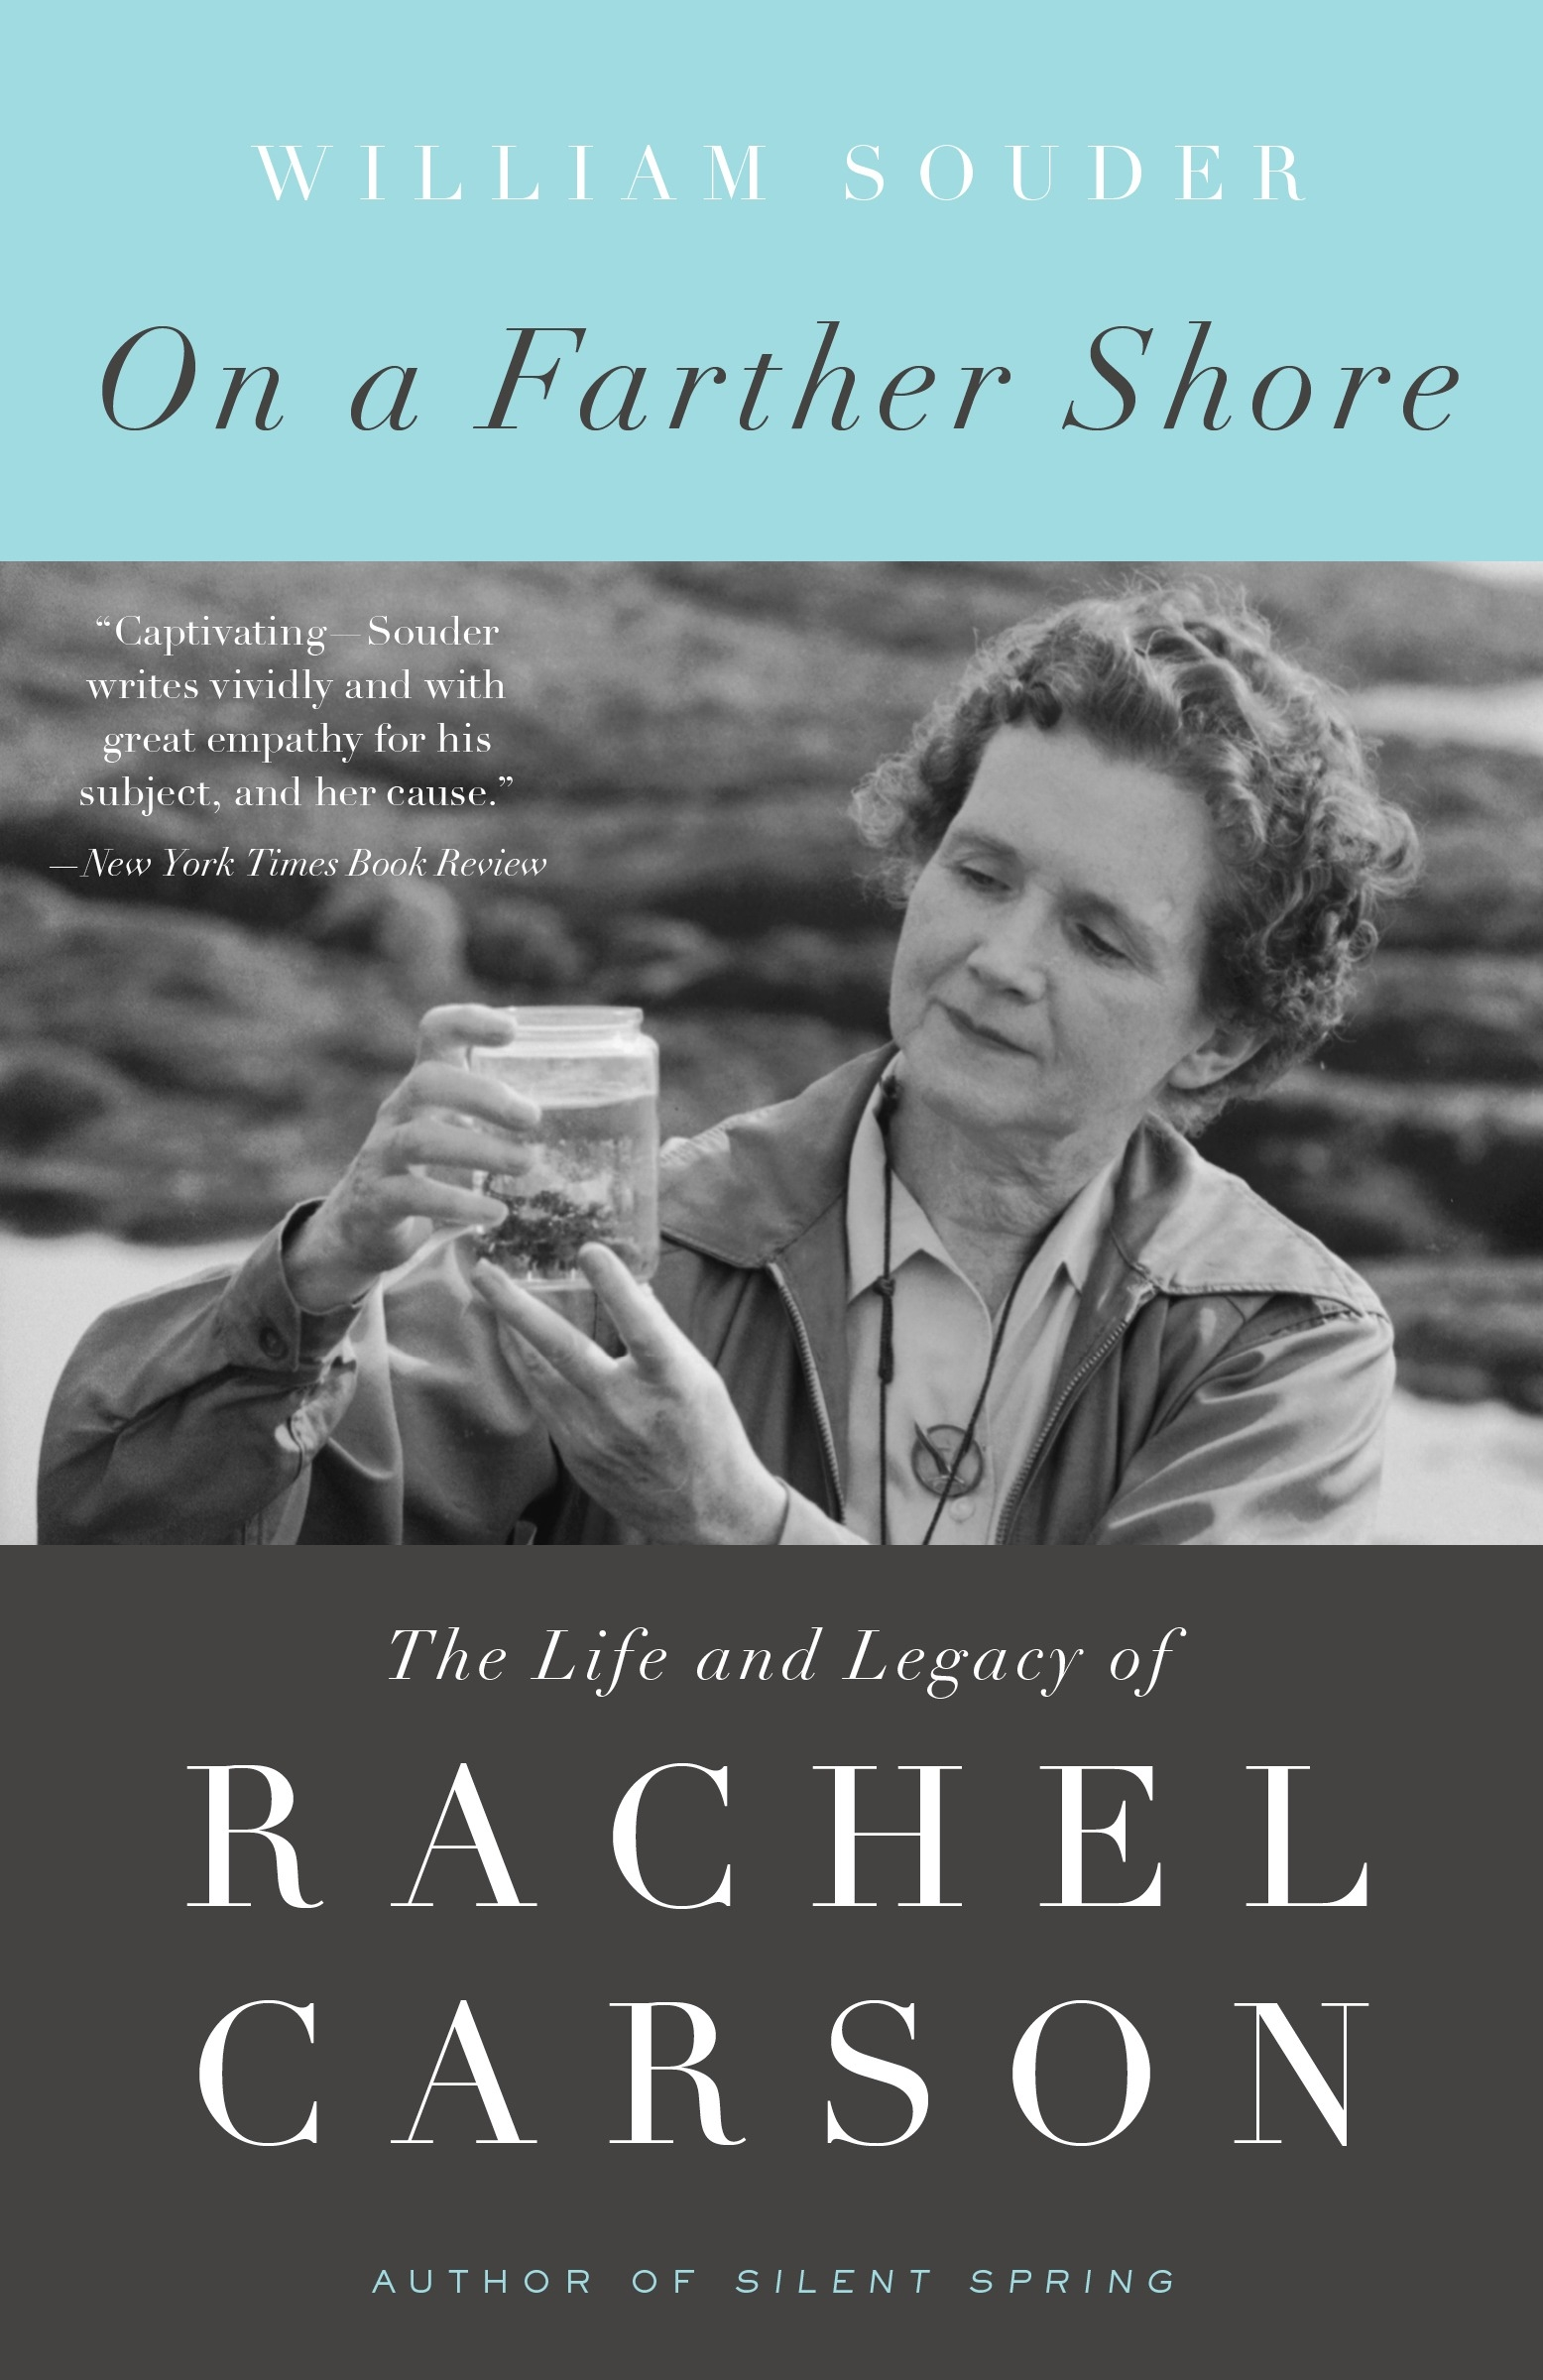 On a Farther Shore: The Life and Legacy of Rachel Carson by William Souder, ISBN: 9780307462213